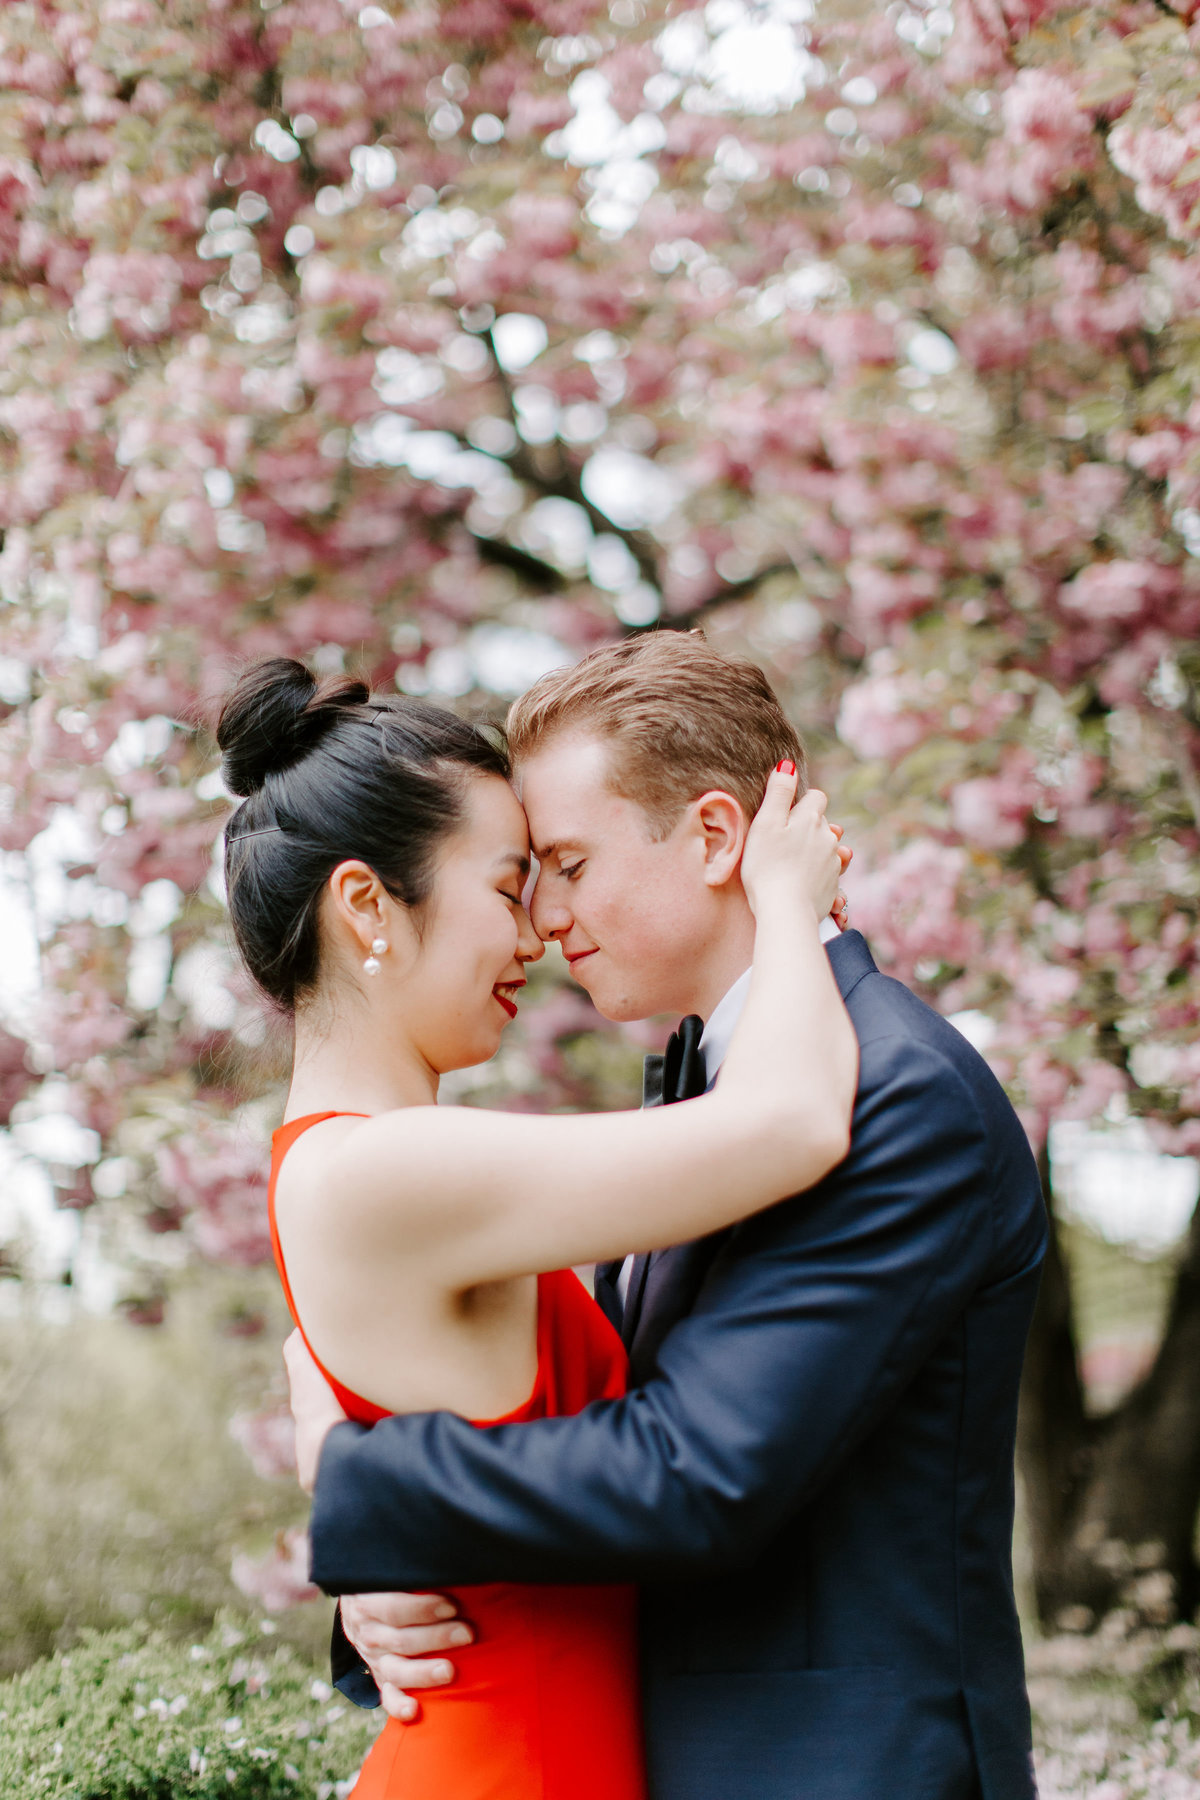 Violet-Yin-engagement_©2019daniellepearce-small-98